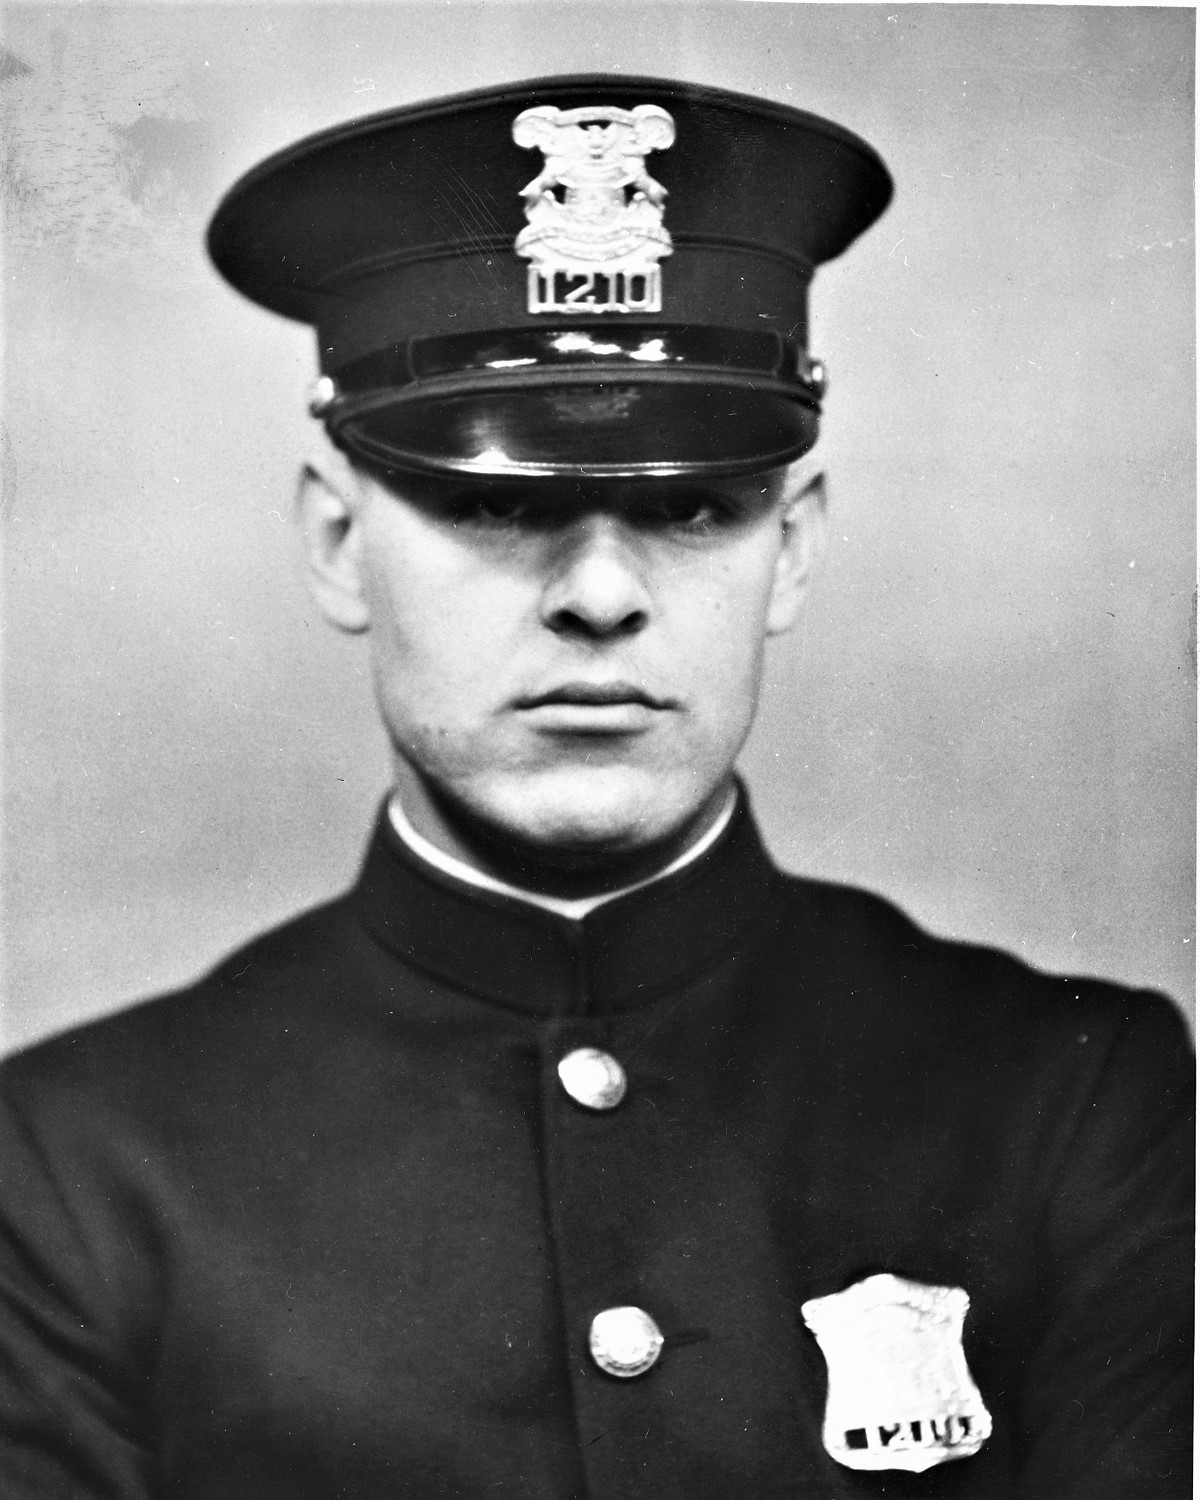 Police Officer Walter L. Darsee | Detroit Police Department, Michigan